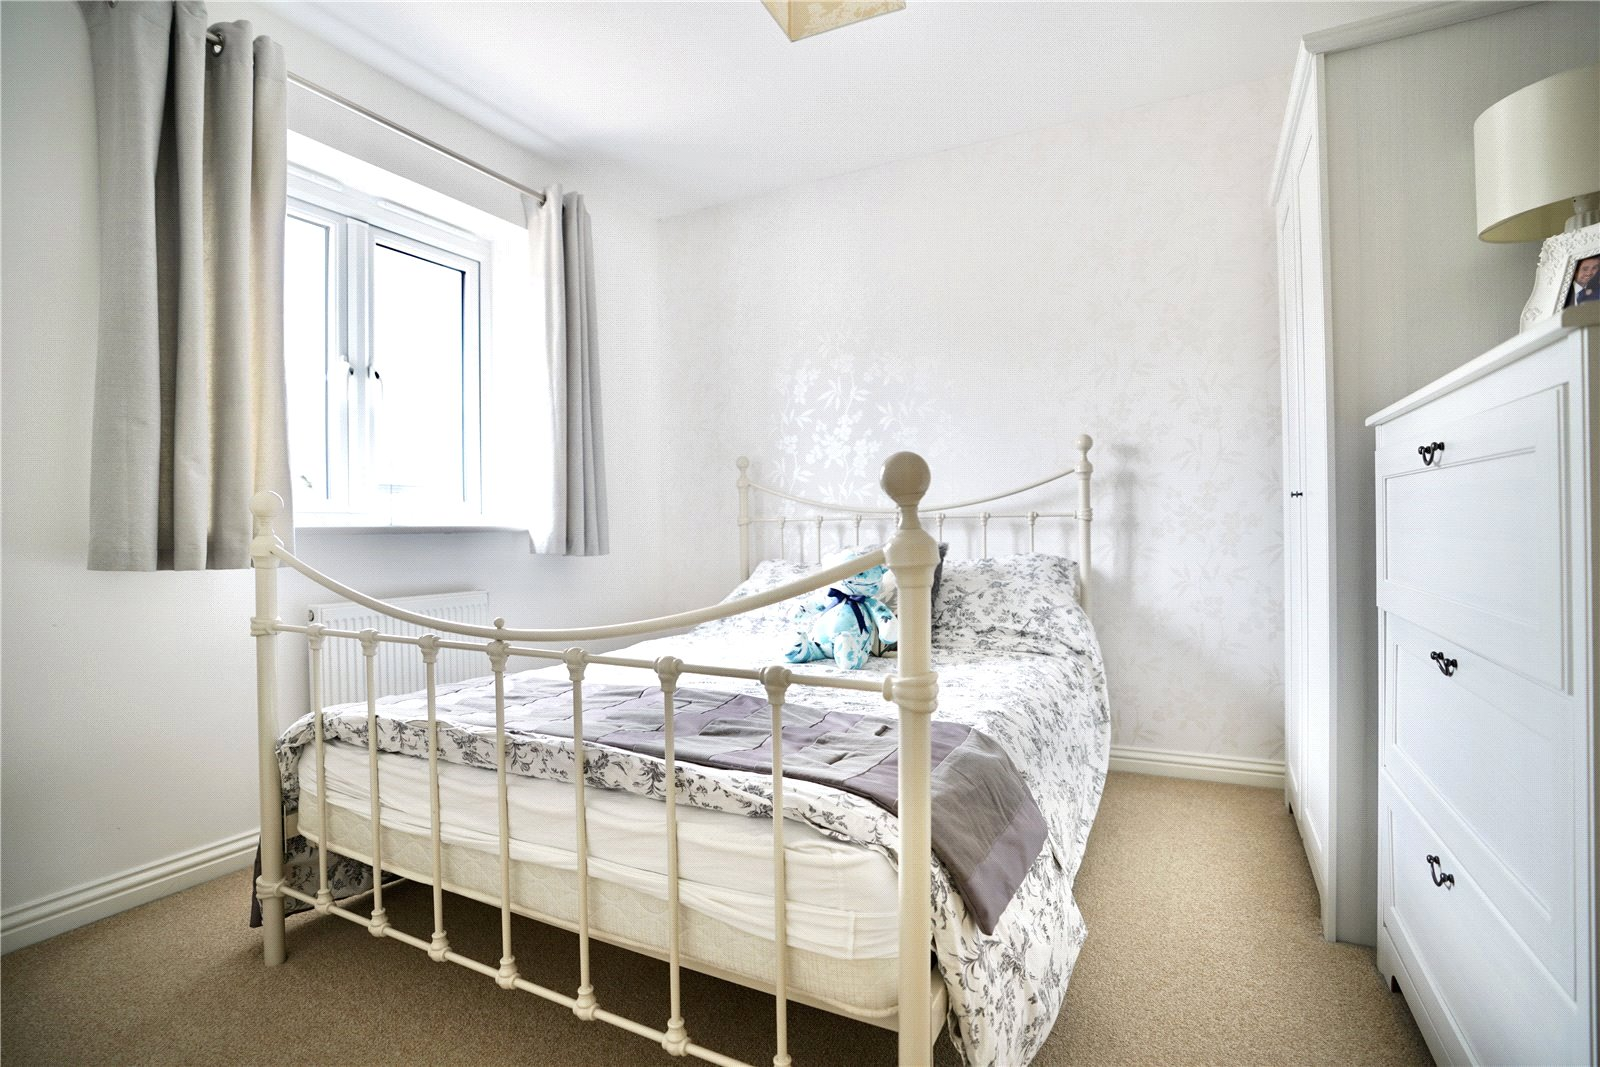 3 bed house for sale in St. Ives, PE27 5DL  - Property Image 8